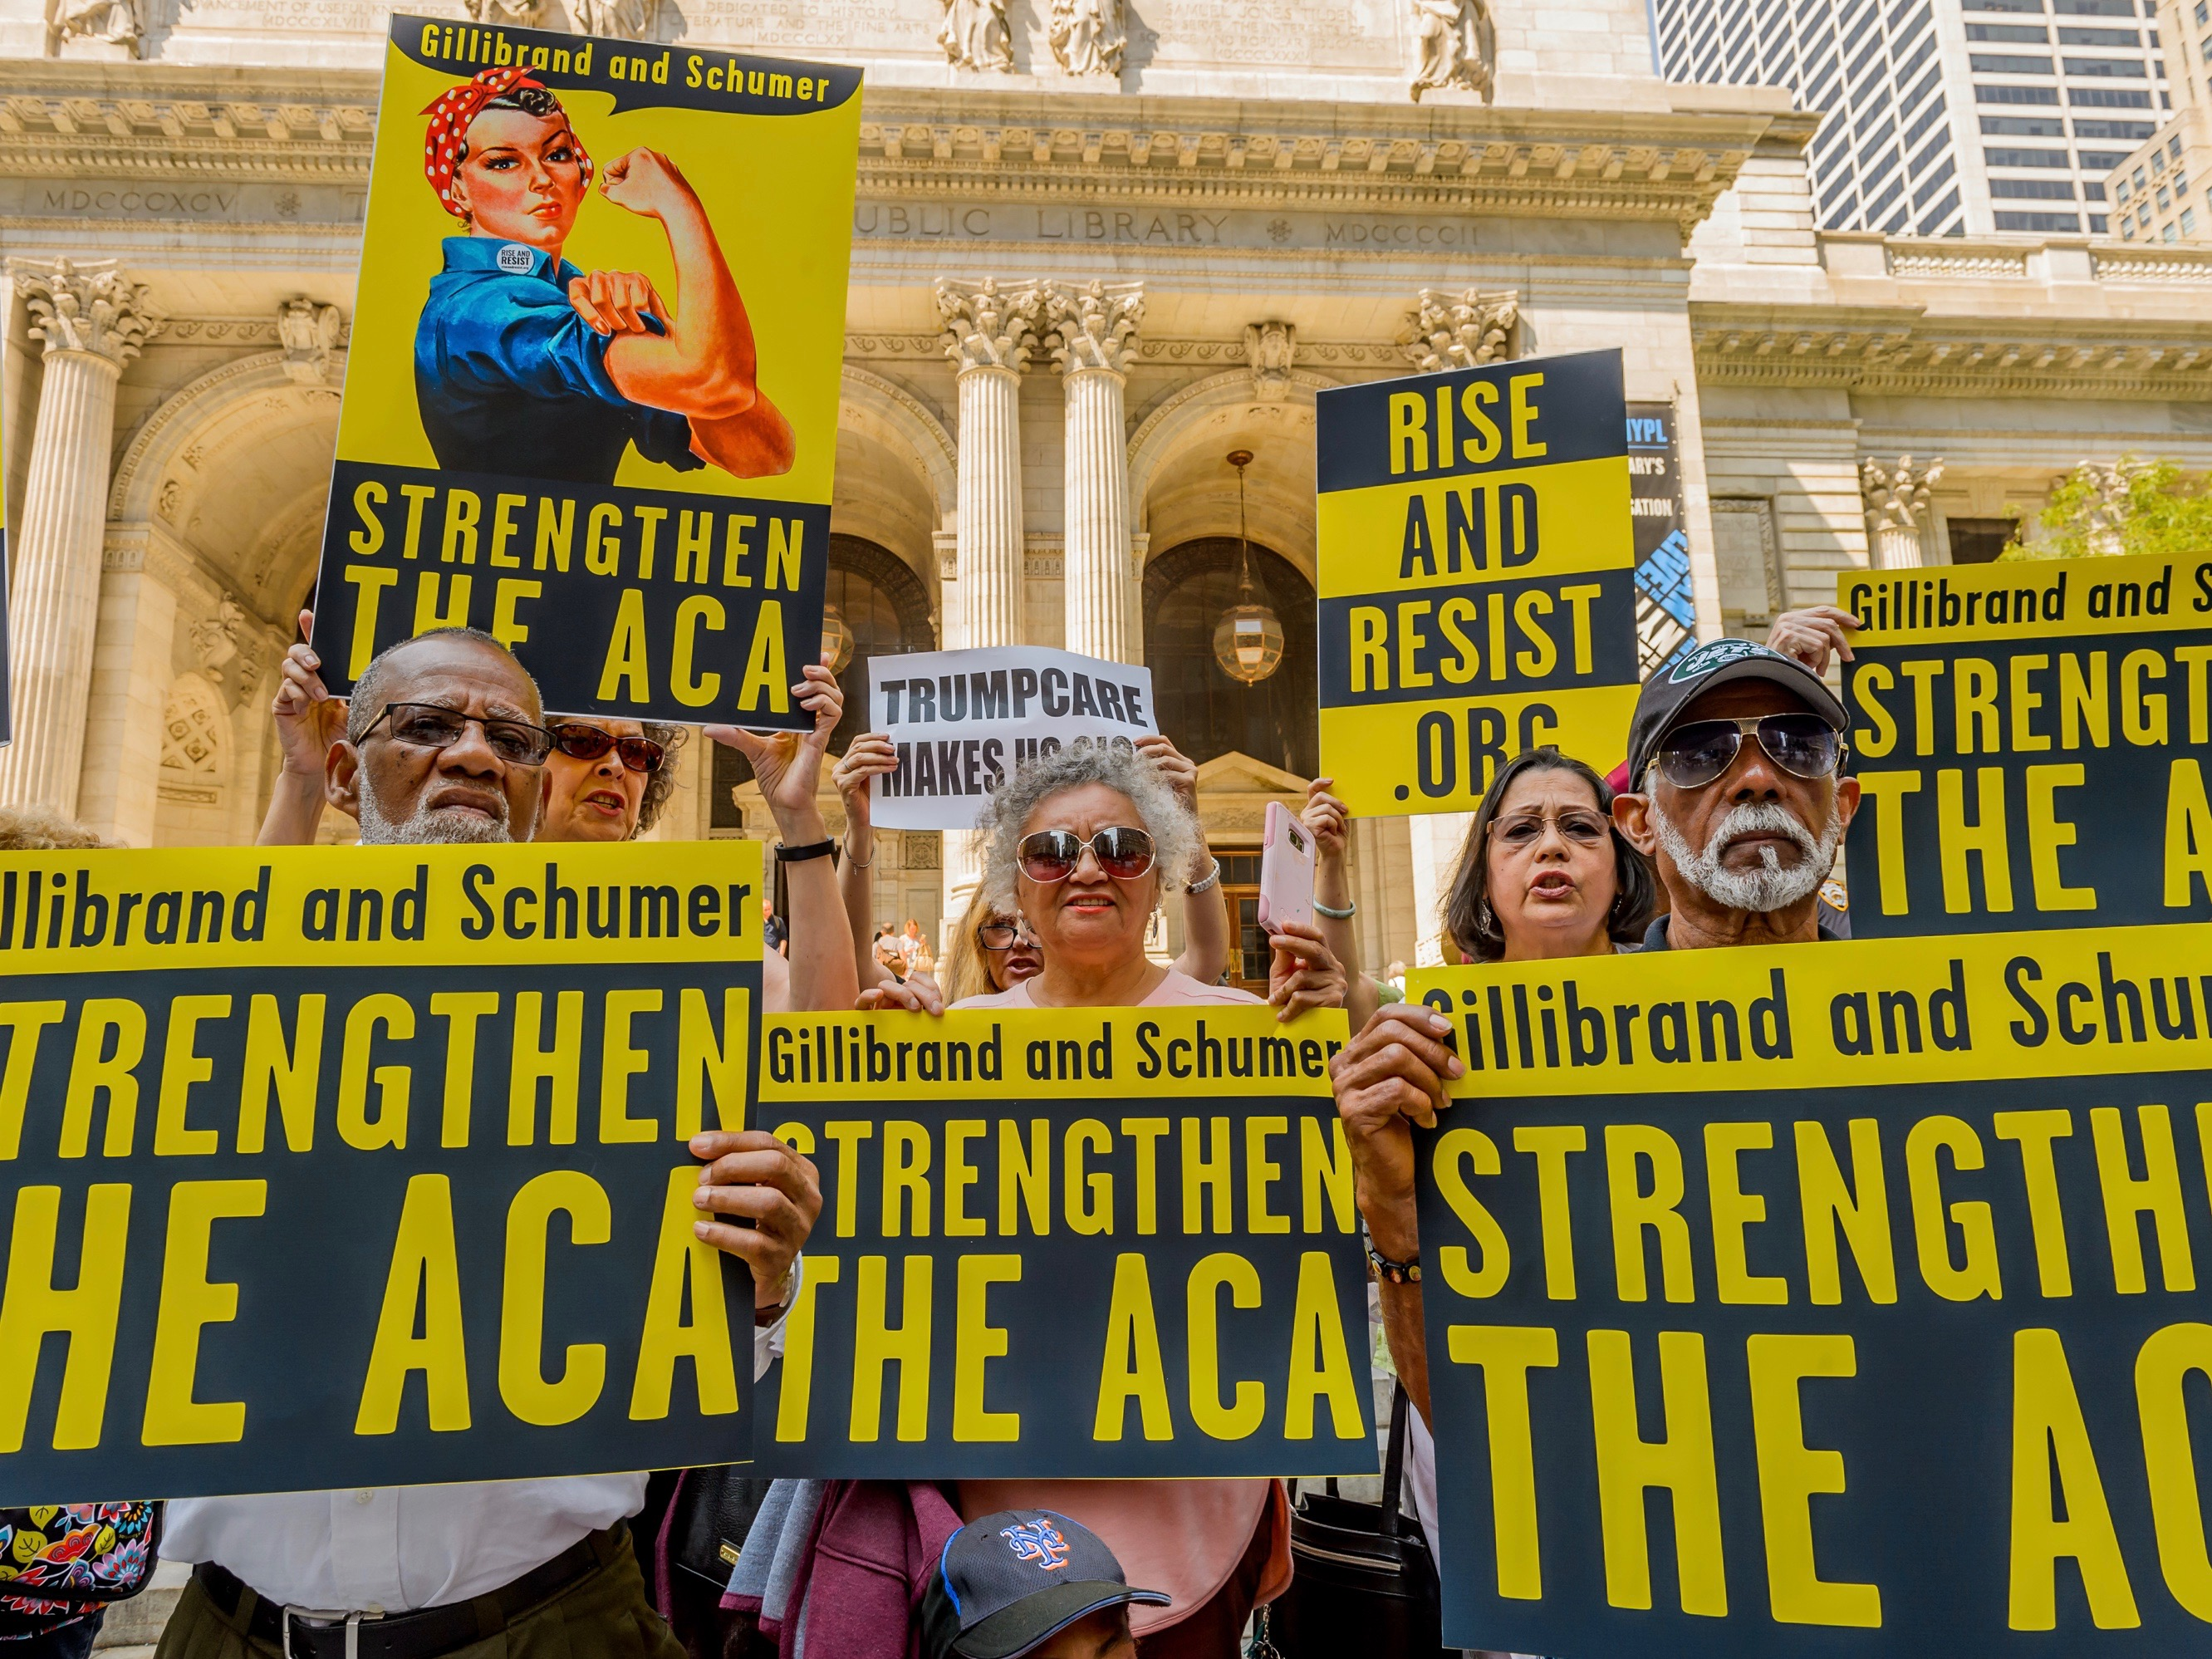 Activists marched to the offices of Senators Schumer and